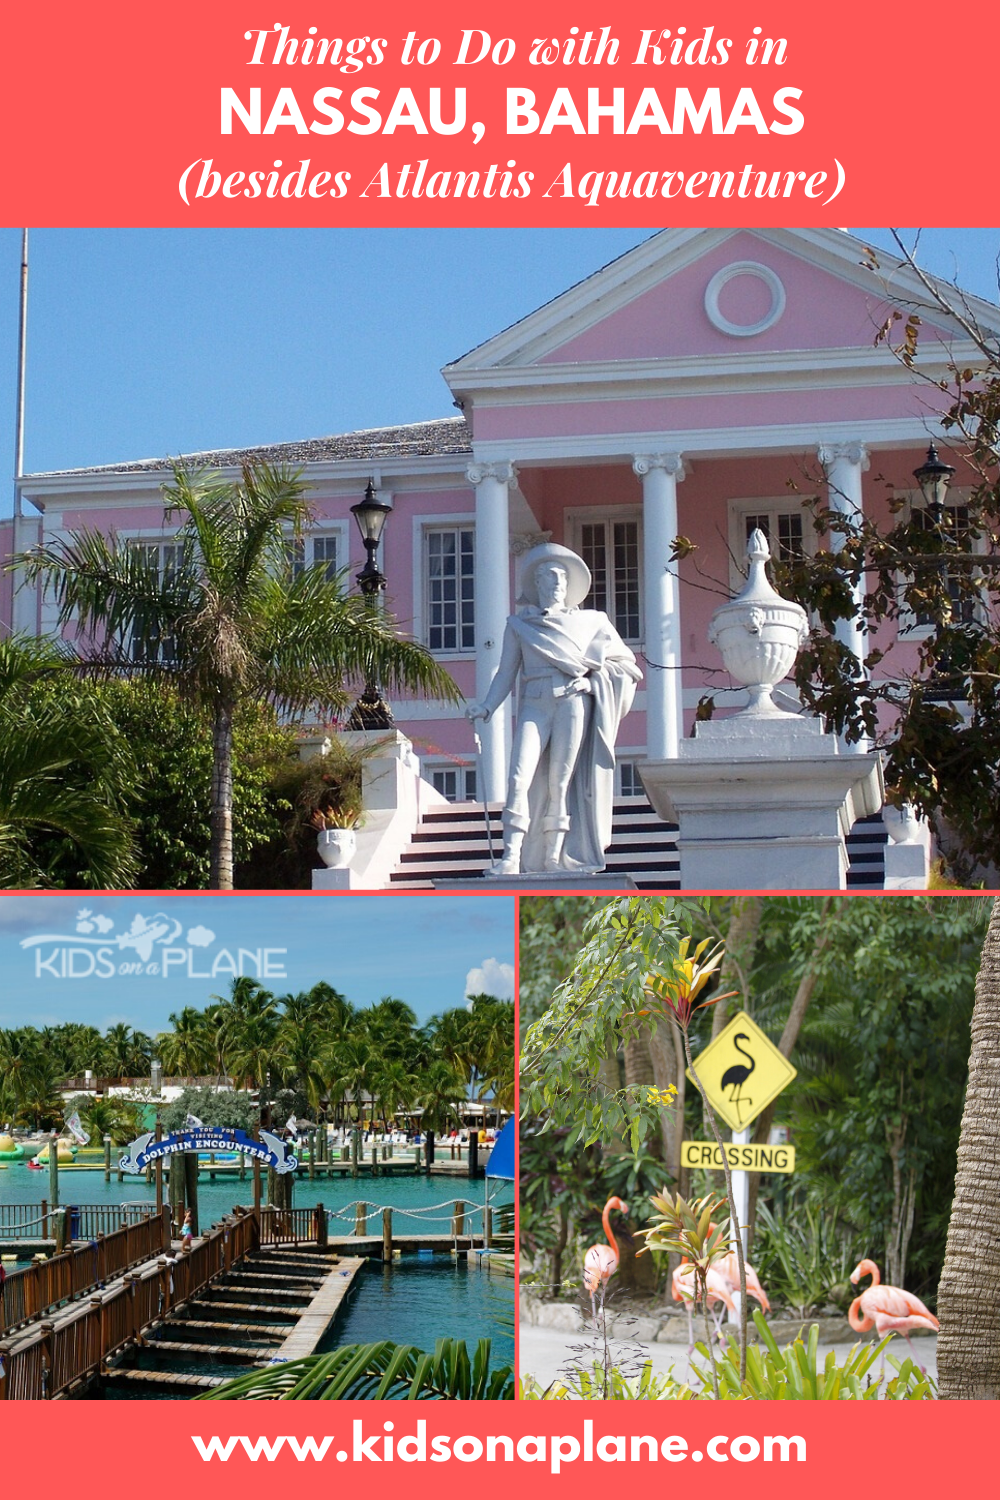 Things to do with kids in Nassau Bahamas besides Atlantis Aquaventure - Cruise Port Day Itinerary